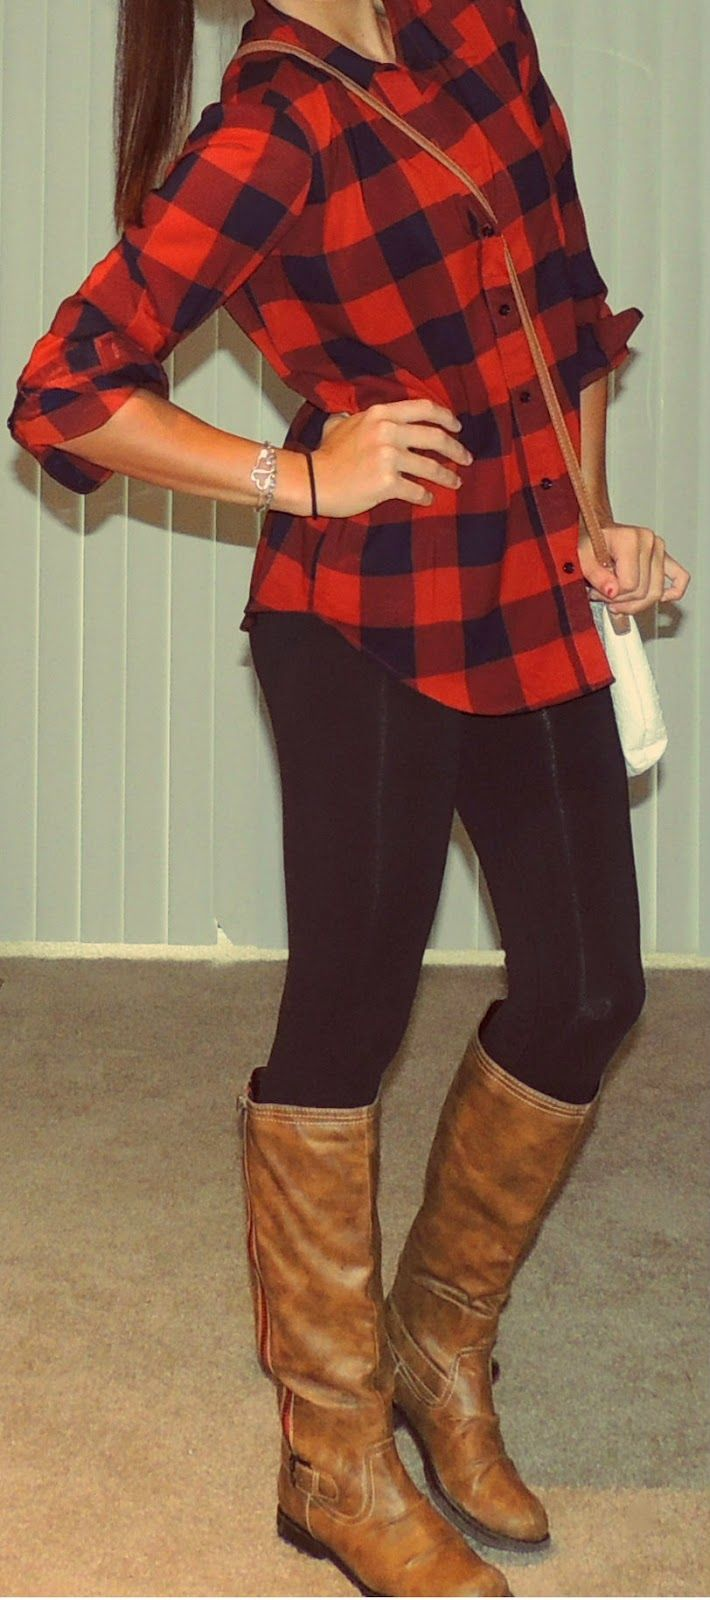 Plaid & Boots.: Target Boots, Flannels Shirts, Dreams Closet, Fall Wins, Fall Looks, Fall Outfit, Plaid Shirts, Brown Boots, Red Black